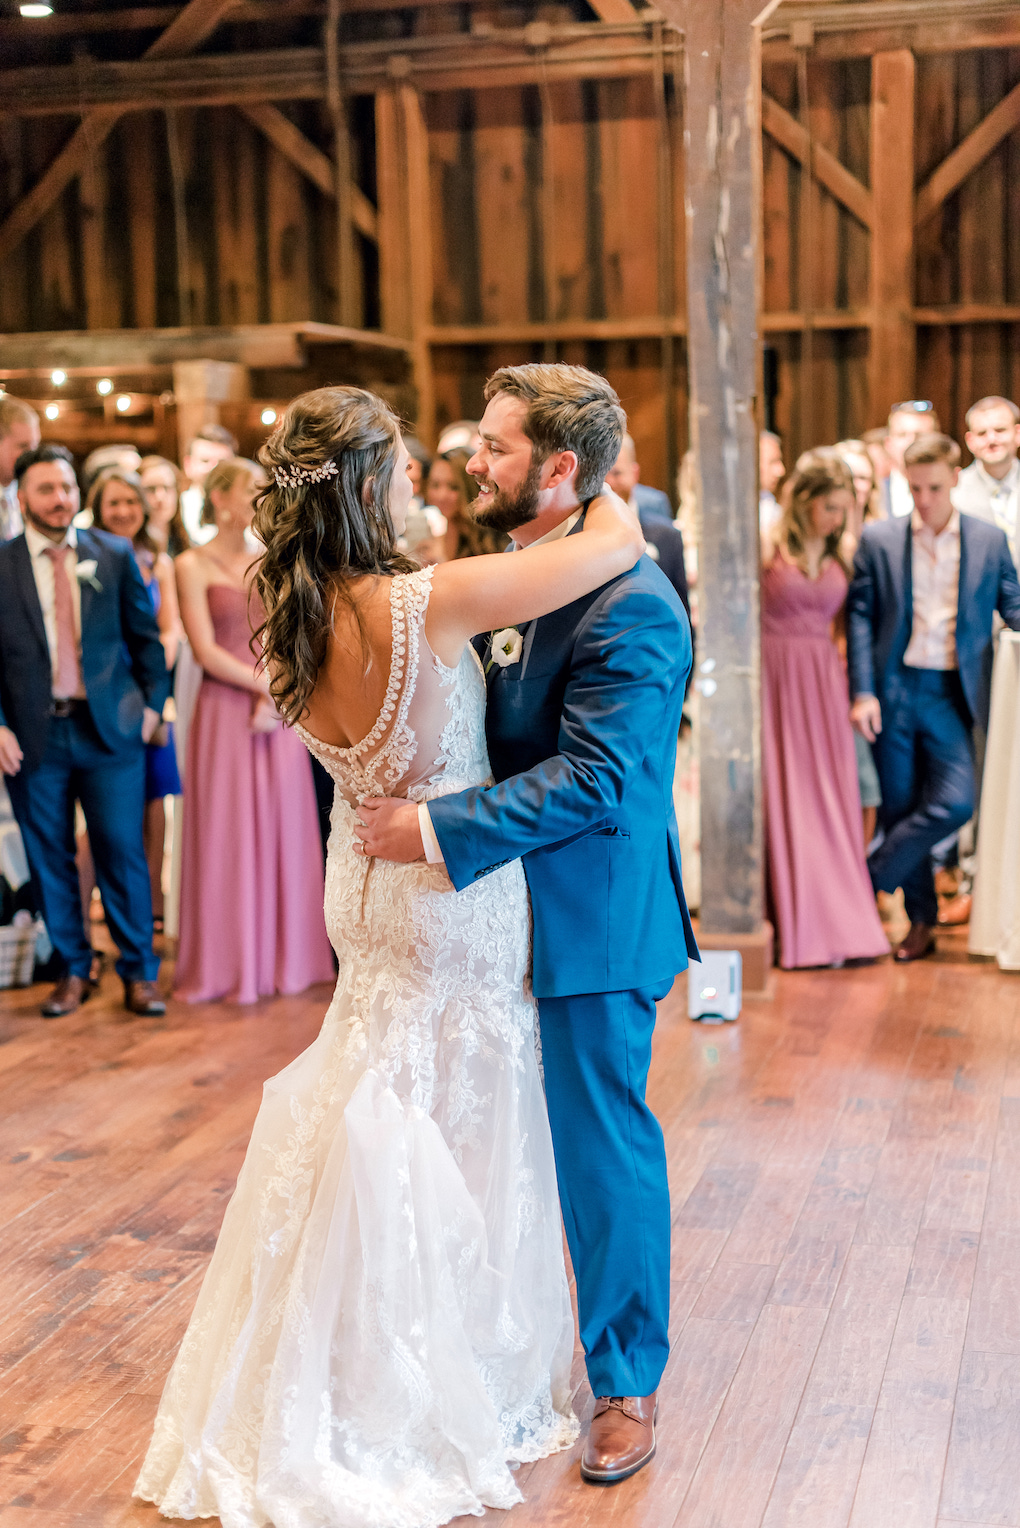 First dance ideas: Romantic Delicate Summer Wedding in Pittsburgh planned by Exhale Events. See more at exhale-events.com!